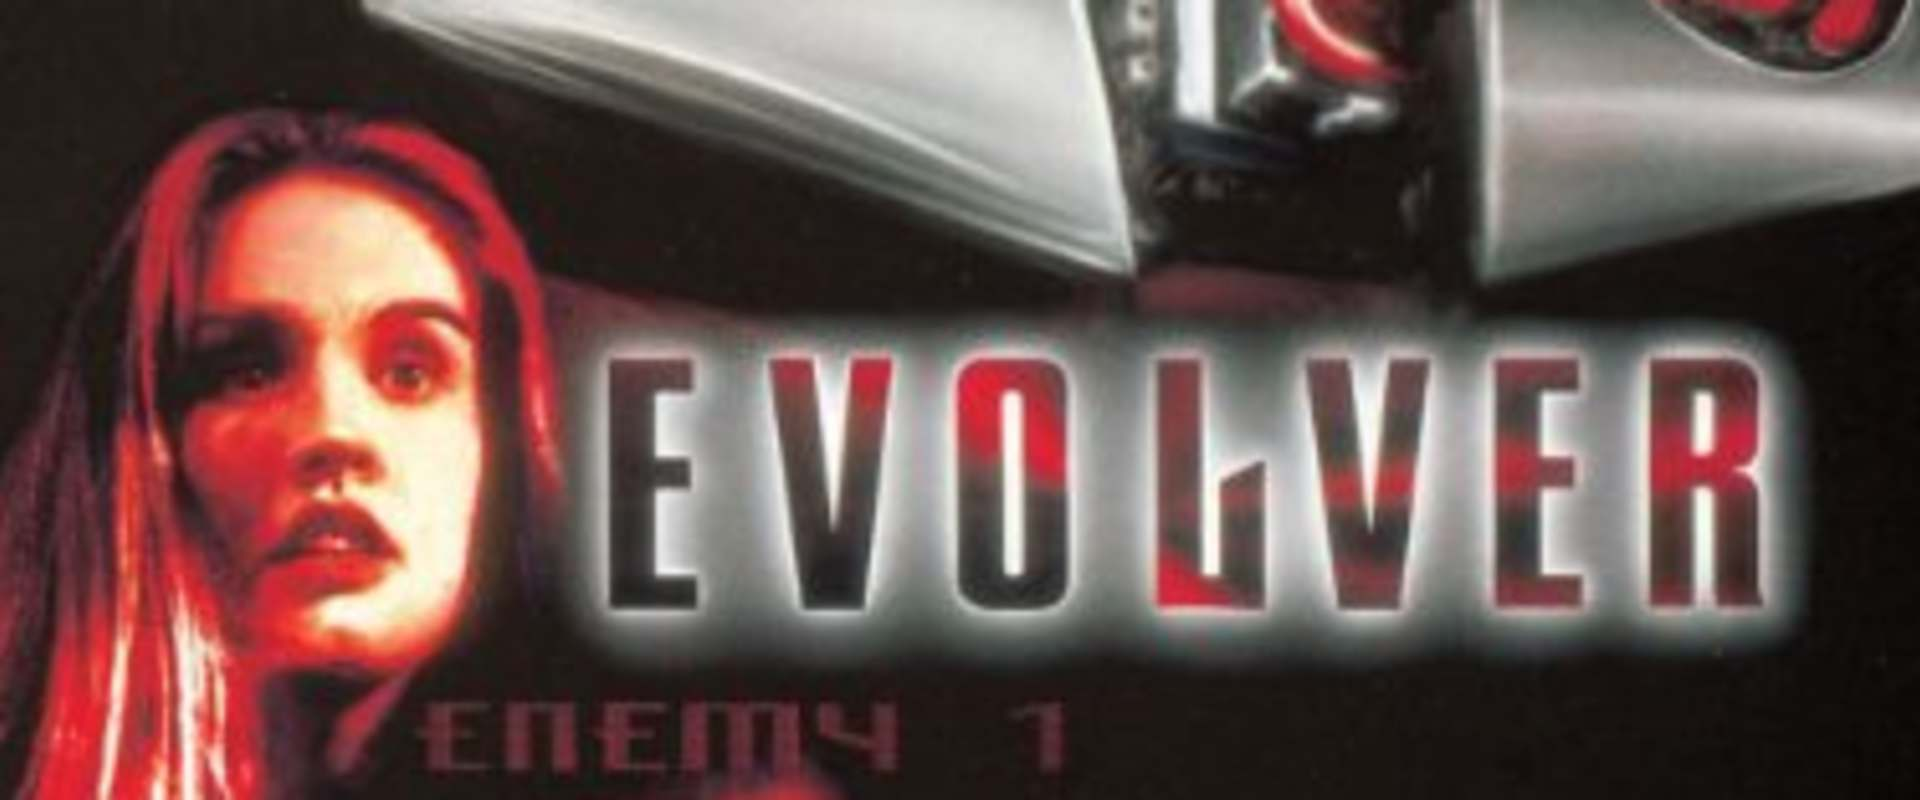 Evolver background 1